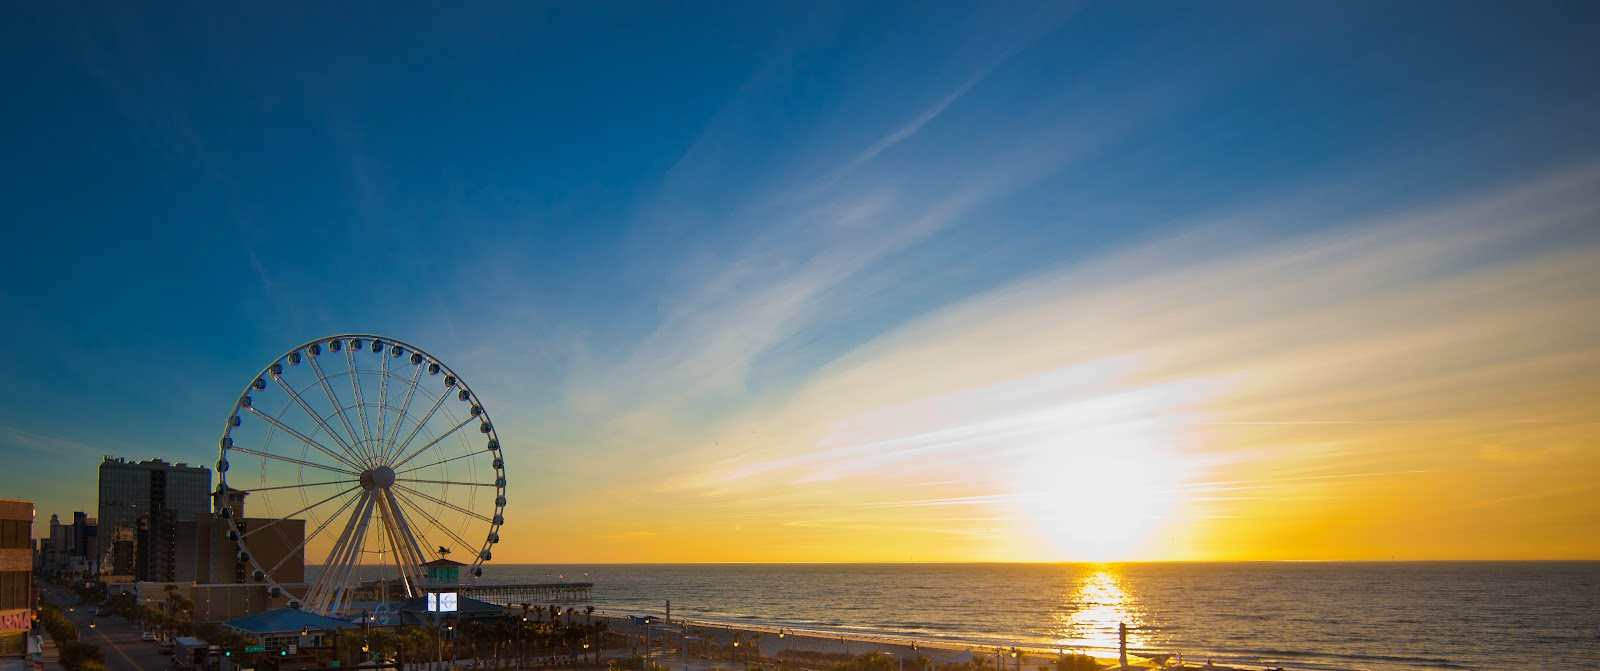 41+] Myrtle Beach Wallpaper Images on ...